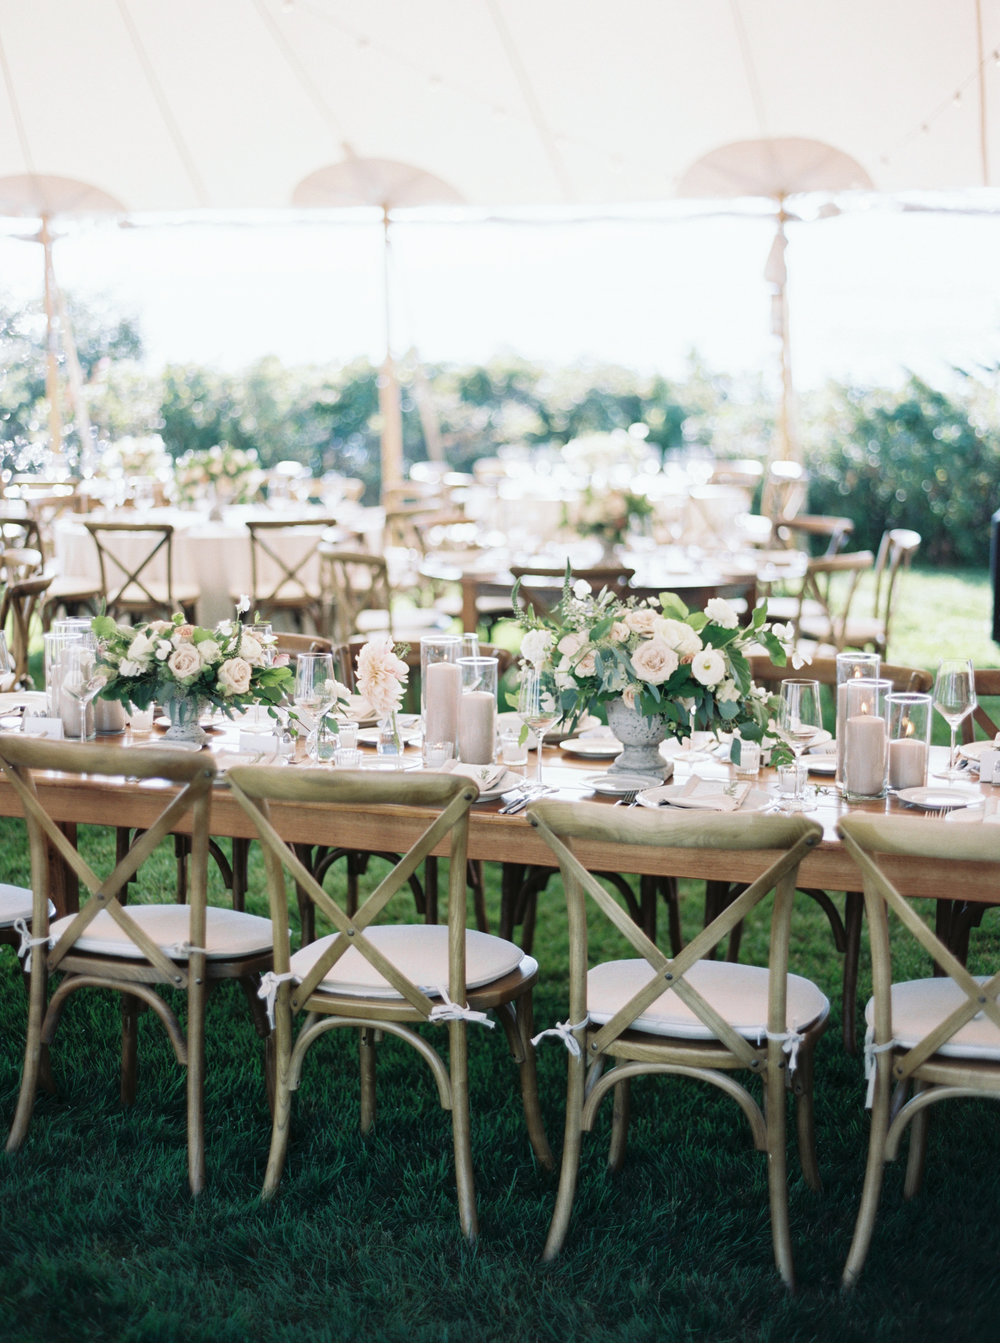 Mastering the Private Estate Wedding - THE MASTER COURSEBY ALWAYS YOURS EVENTS